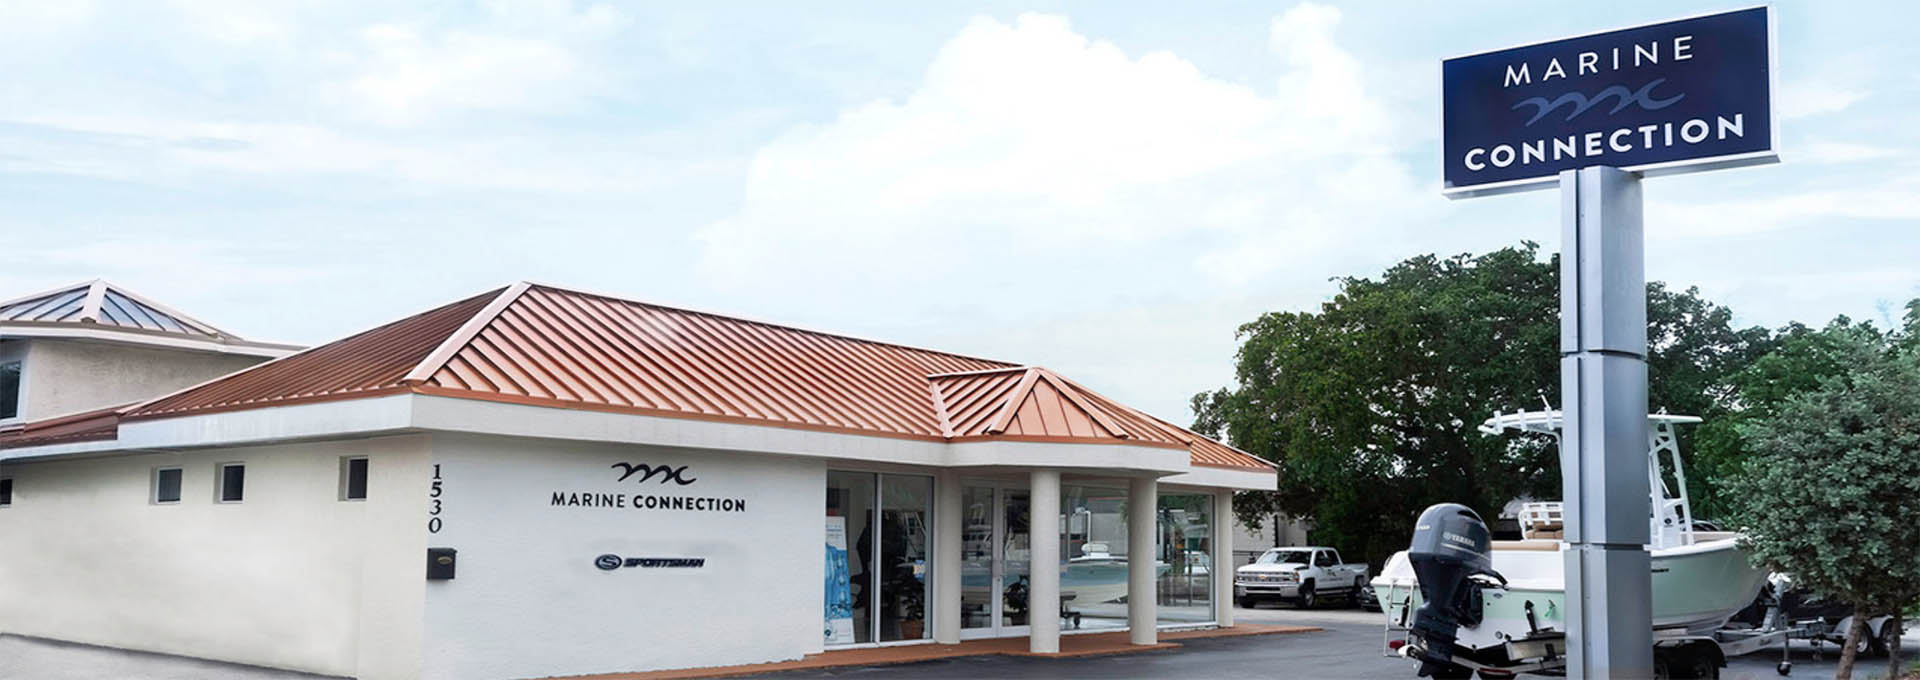 Store front image for the dealership located at Vero Beach, FL